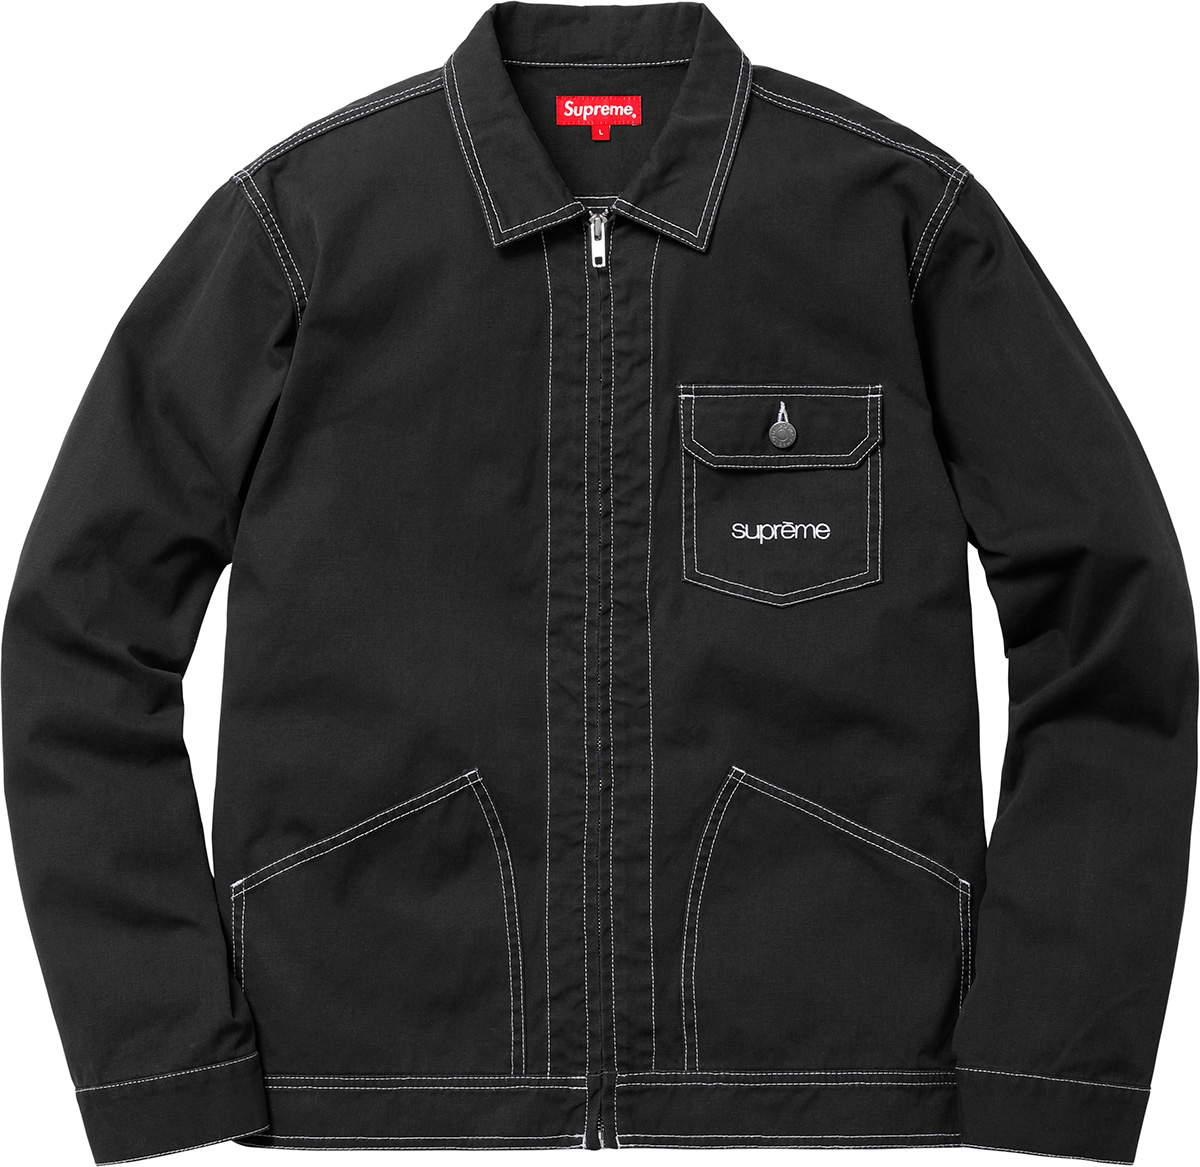 supreme-18ss-spring-summer-contrast-stitch-work-jacket